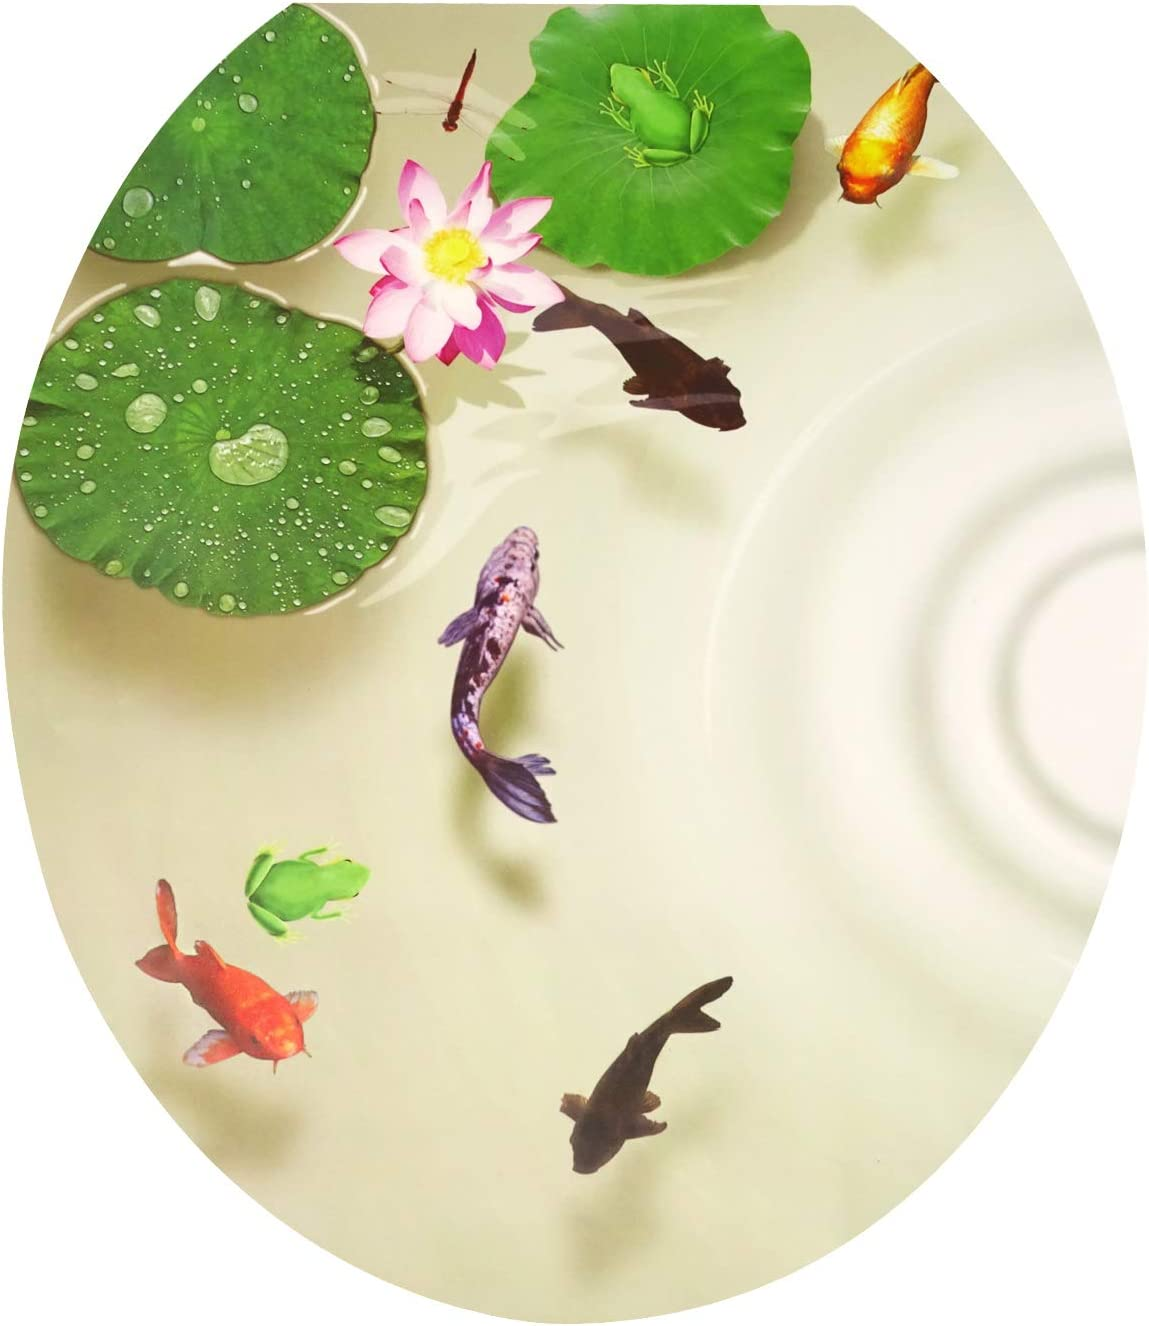 Honbay 3D Toilet Seat Stickers and Removable SALENEW very Attention brand popular Decals Waterproof